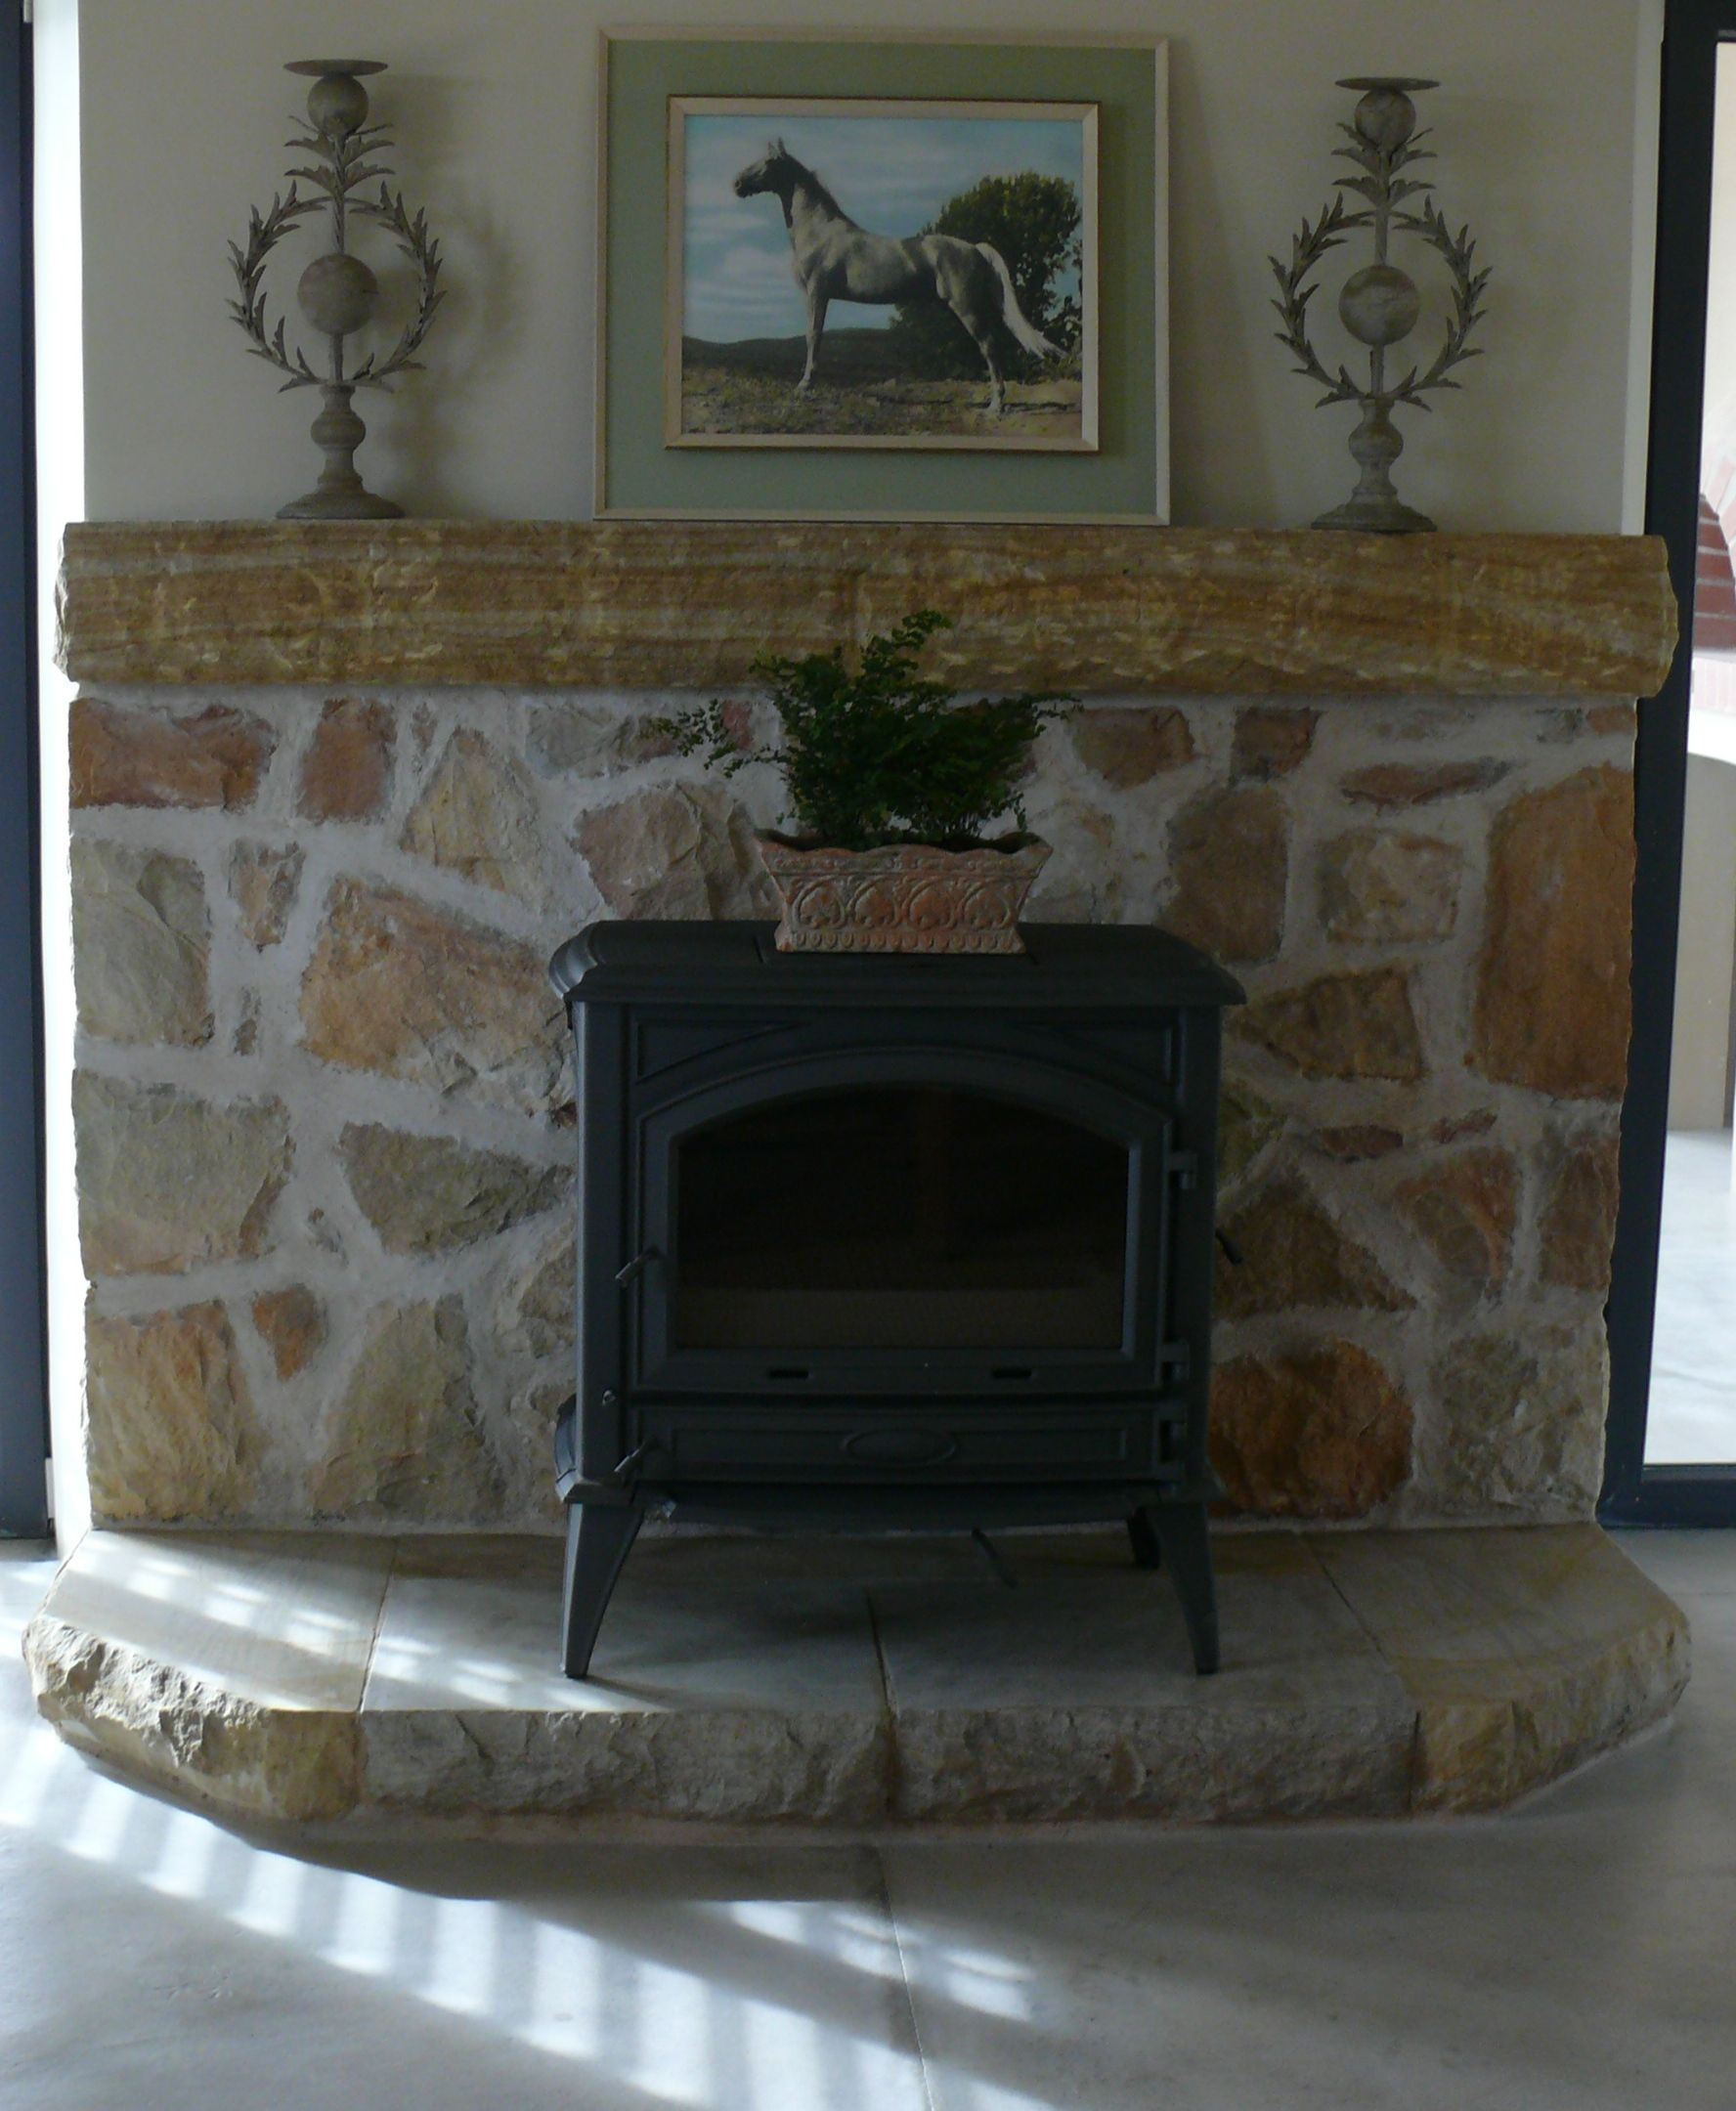 a stone lintel adds a classic ornamental touch to a portal or